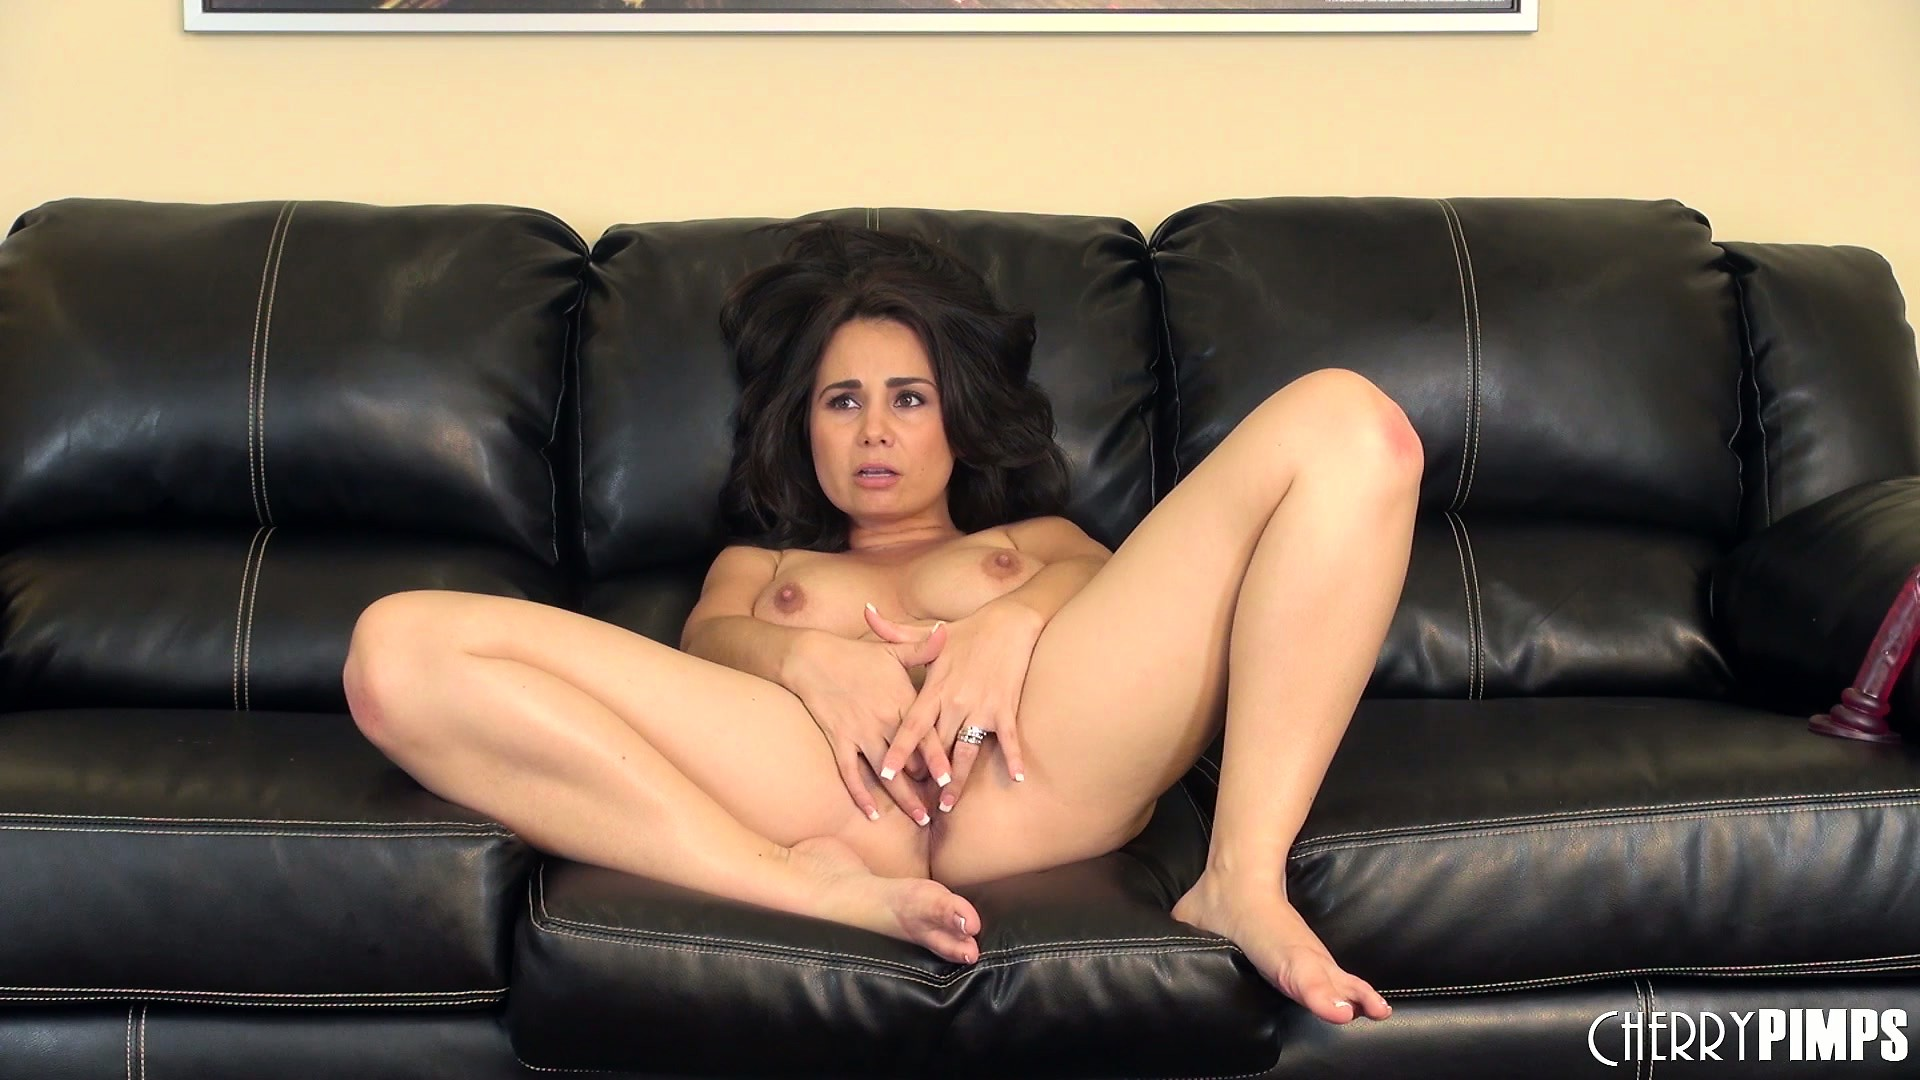 Porno Video of Holly Shows Of Her Wonderful Body On The Couch, Yearning For Some Action